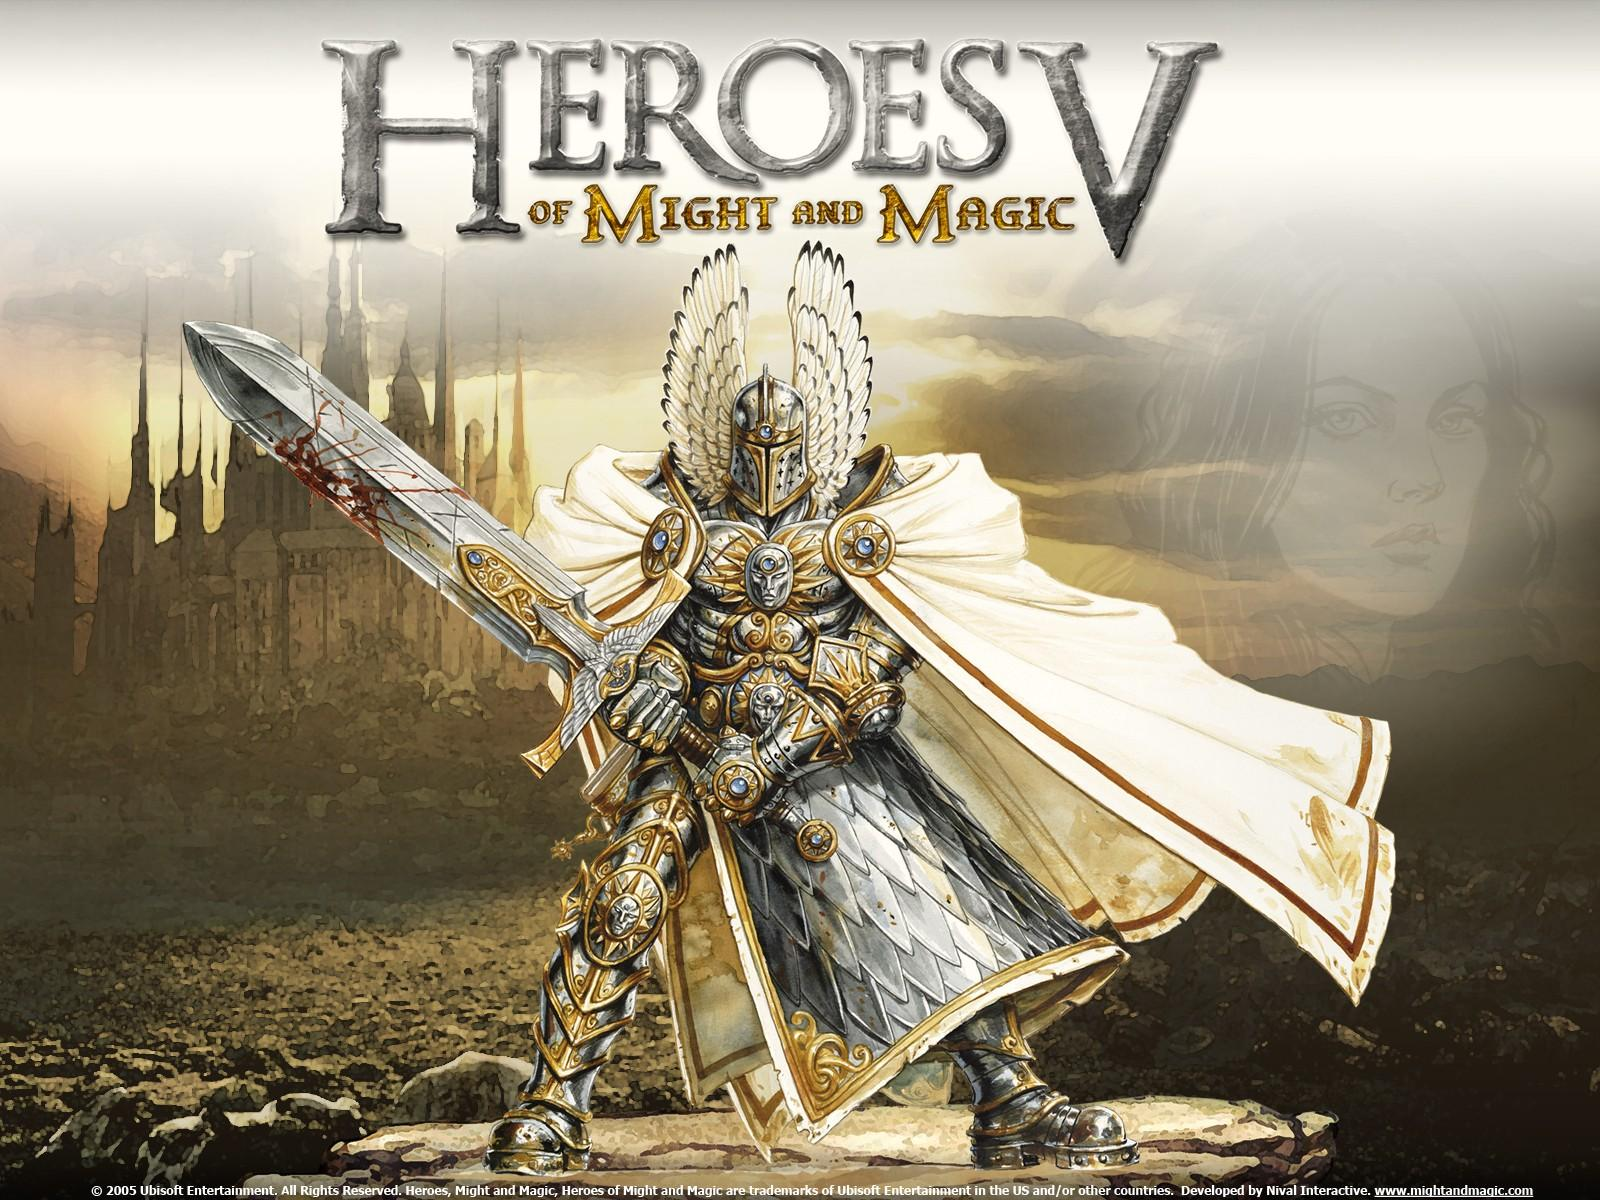 Обои Heroes of Might and Magic 5 1600x1200